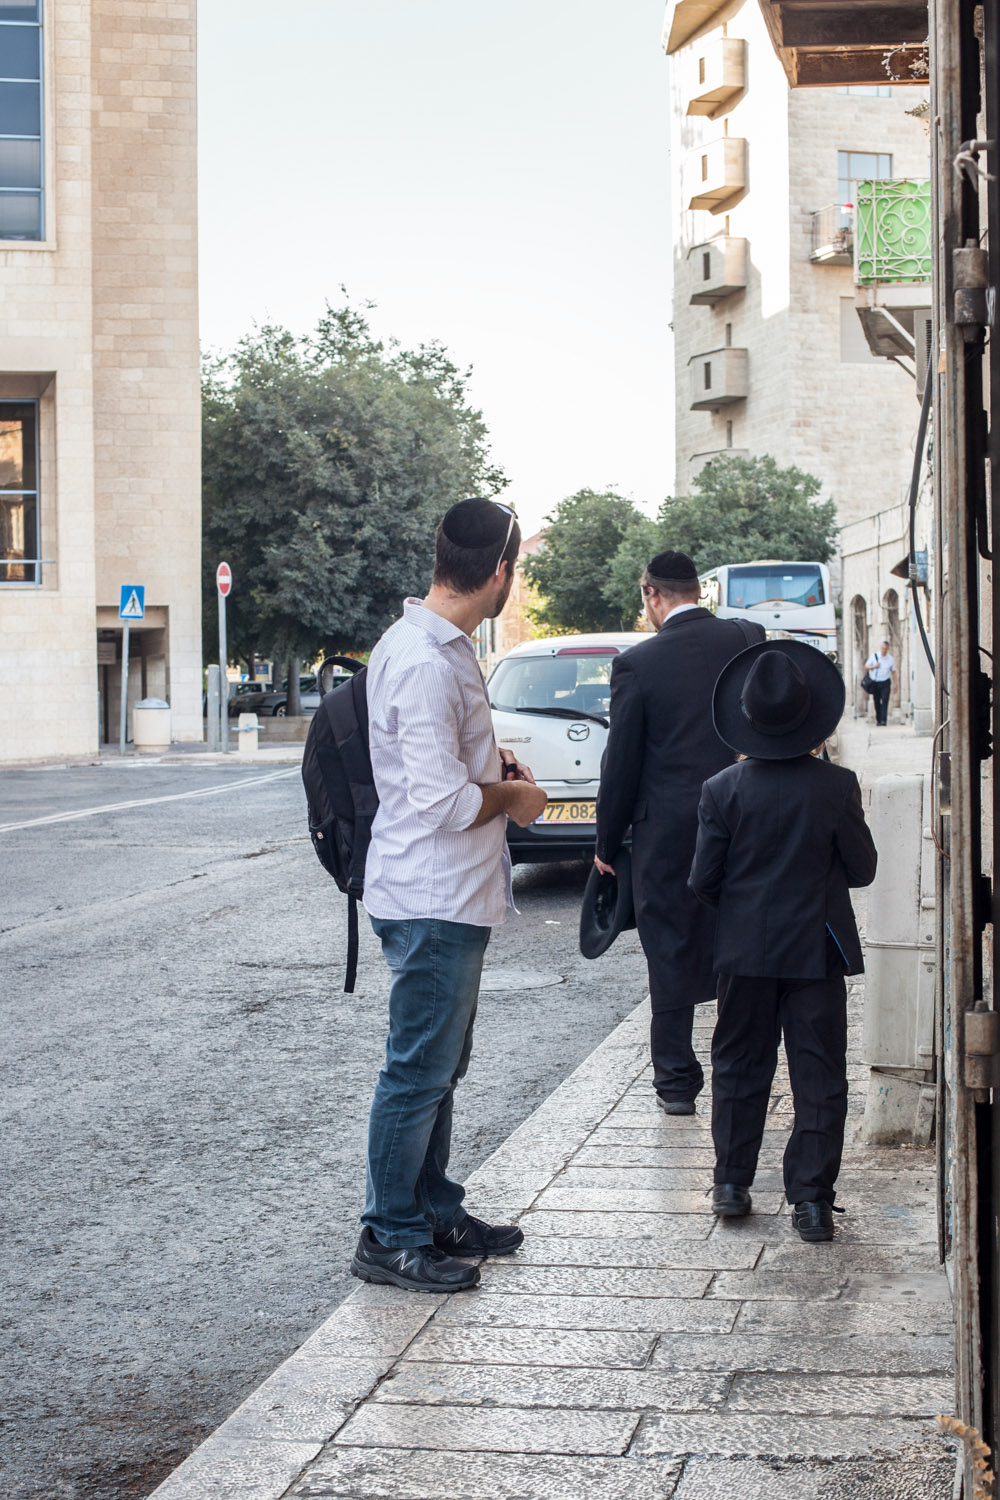 Surprise encounter with Dudi's distant relatives  Old City, Jerusalem, July 2016